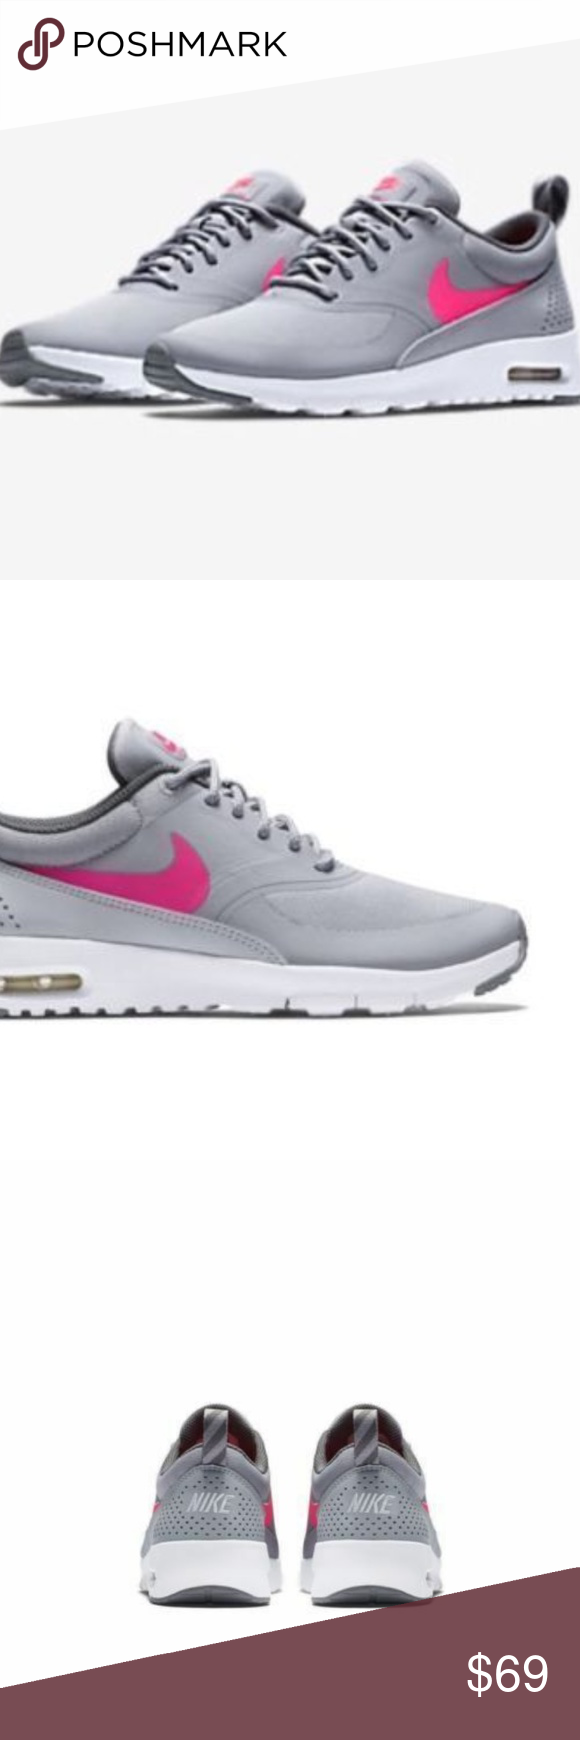 NIKE AIR MAX THEA SIZE 7 YOUTH WOMEN'S SIZE 8.5 Sellers